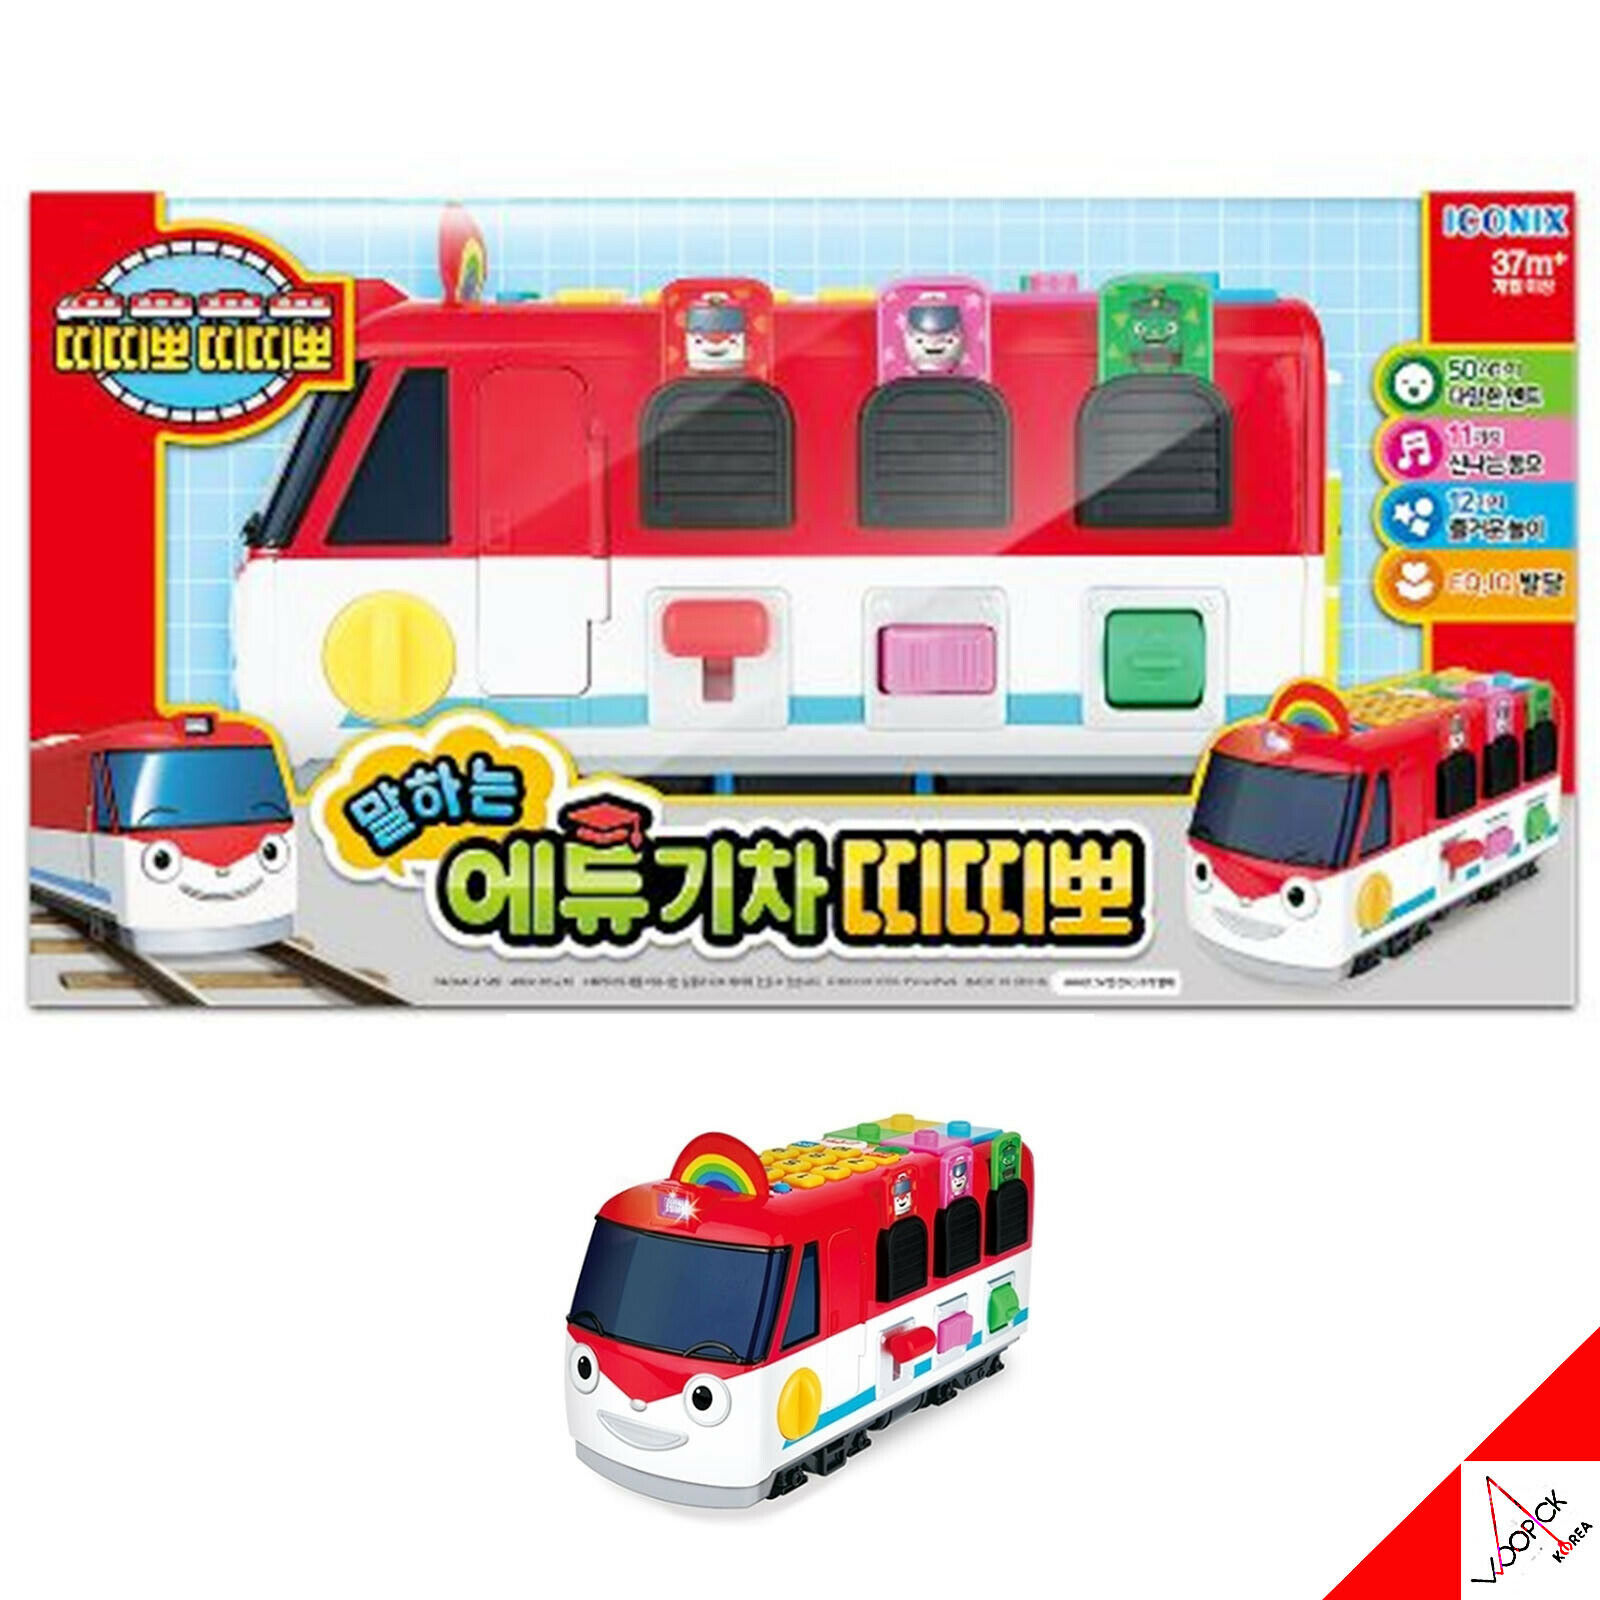 TITIPO Smart Talking Education Train Learning Block Play Spielzeug-LED,Talking,Melody